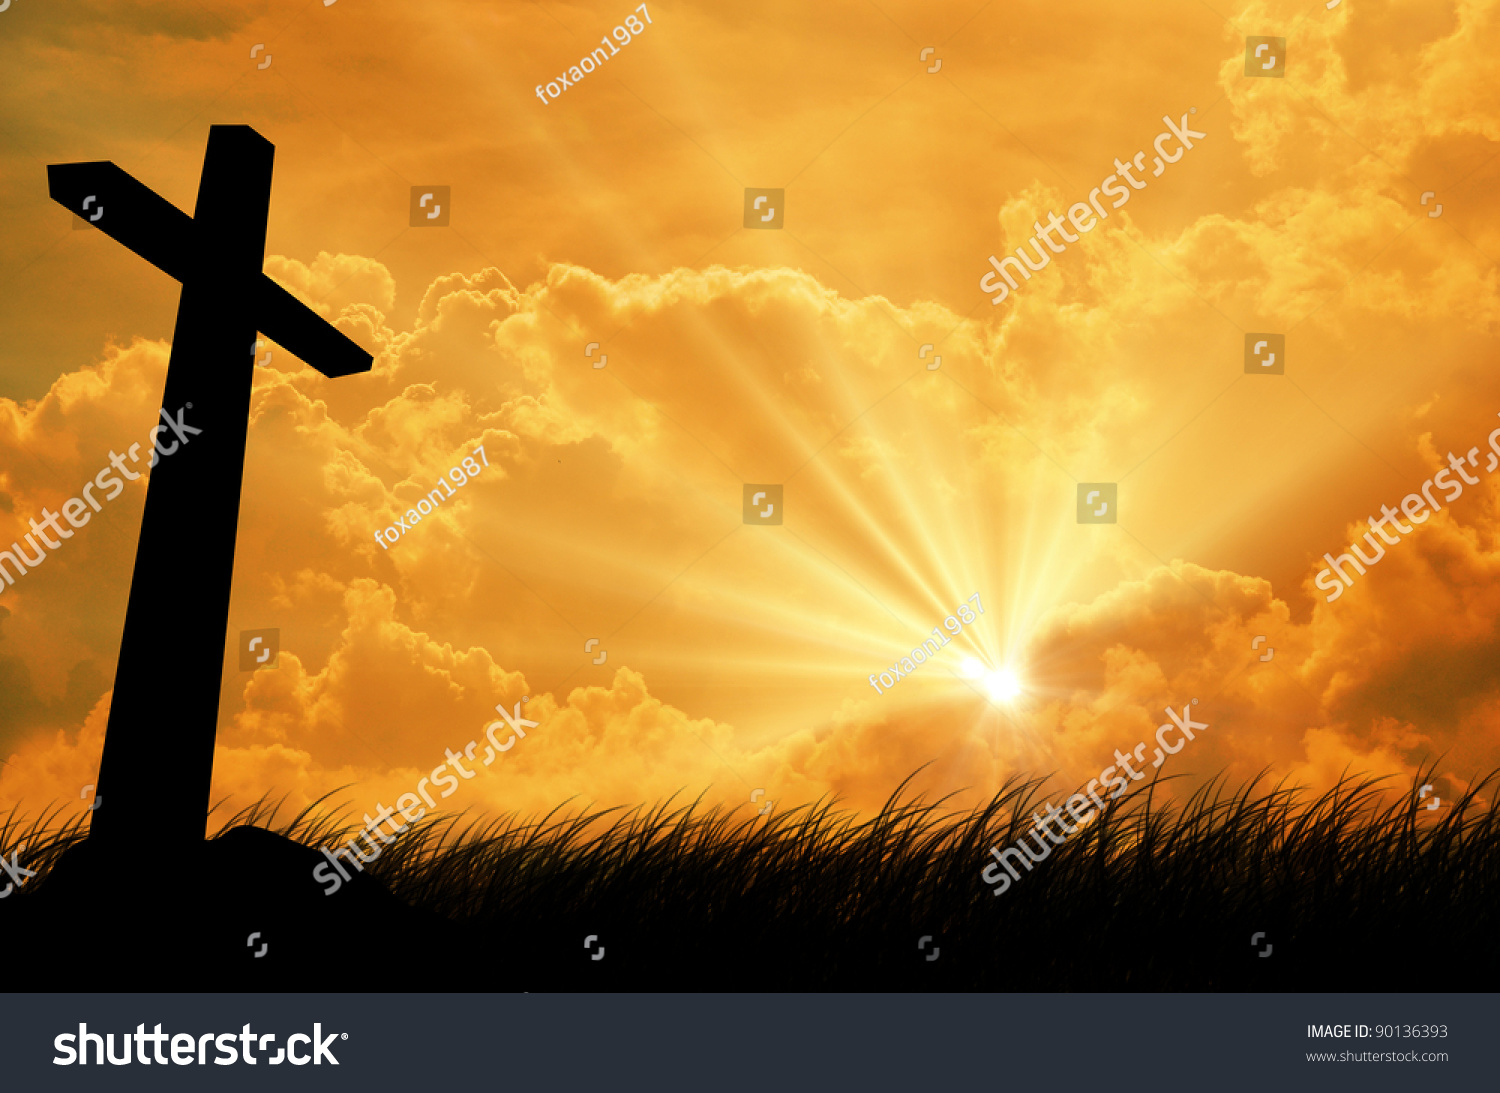 Silhouette of the holy cross on background of storm clouds stock - Cross Silhouette With The Sunset As Background